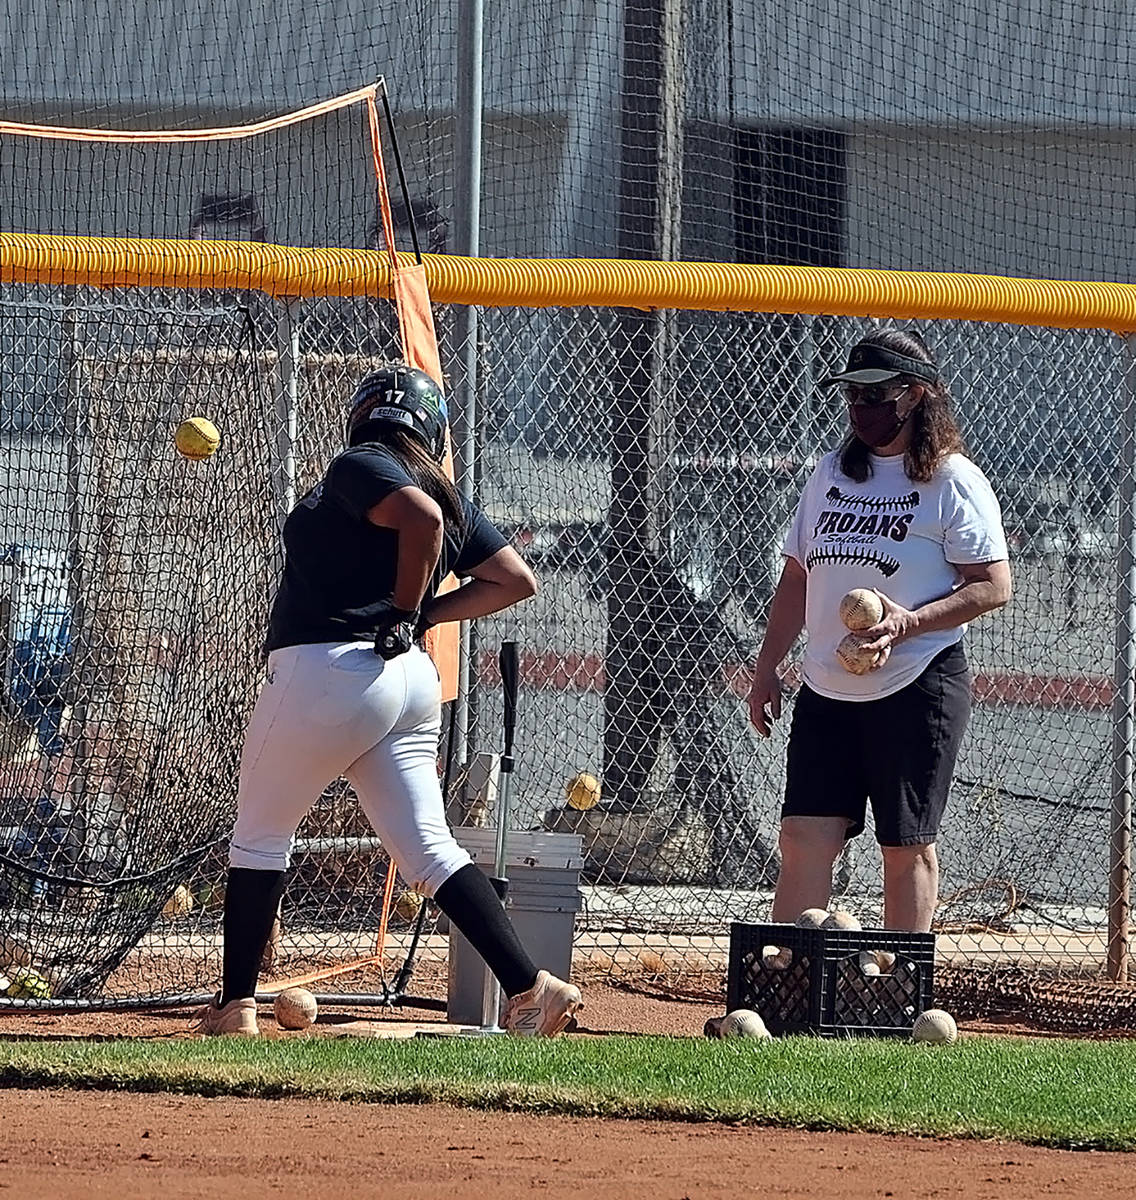 Horace Langford Jr./Pahrump Valley Times Assistant softball coach Susan Toomer monitors a playe ...